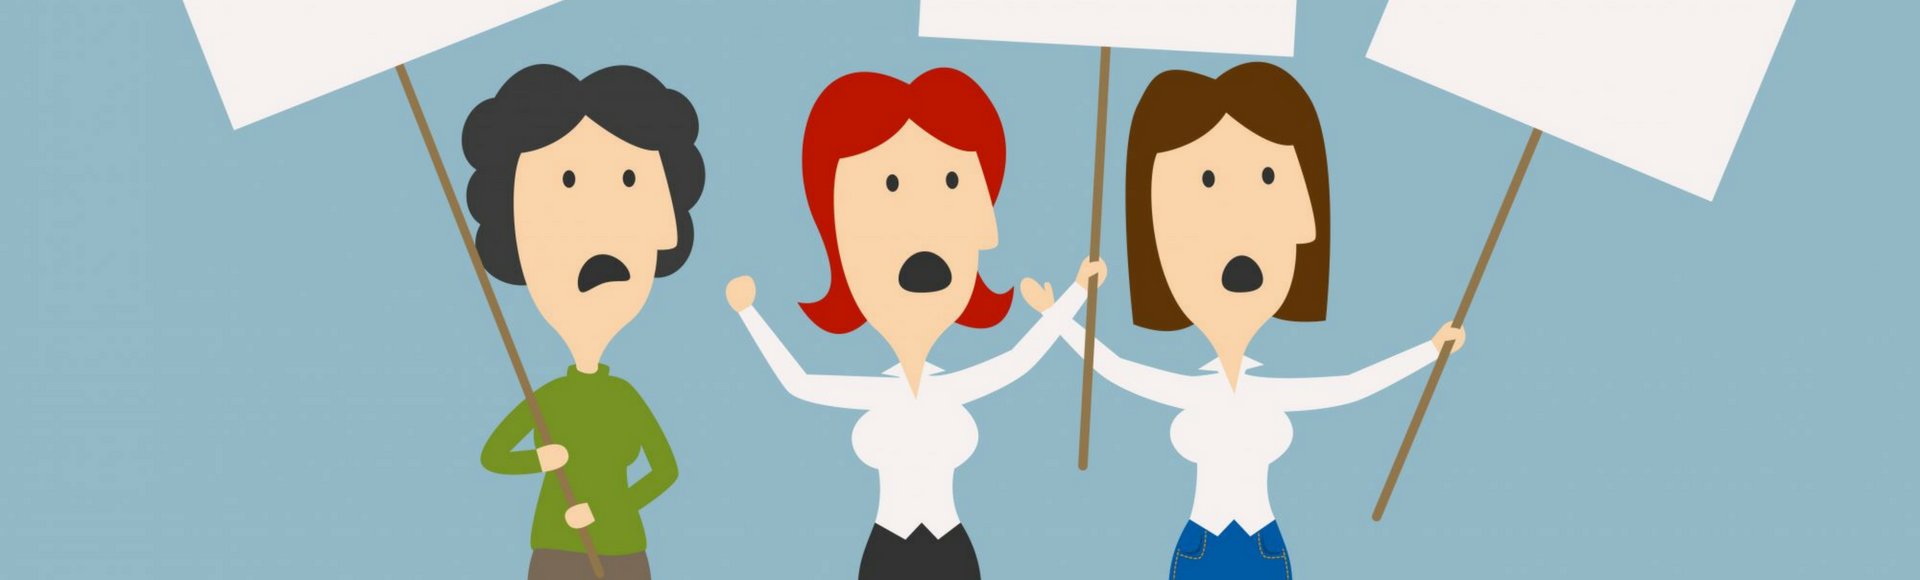 Flat illustration of three retail workers protesting pending bill to cut Sunday overtime in Massachusetts.